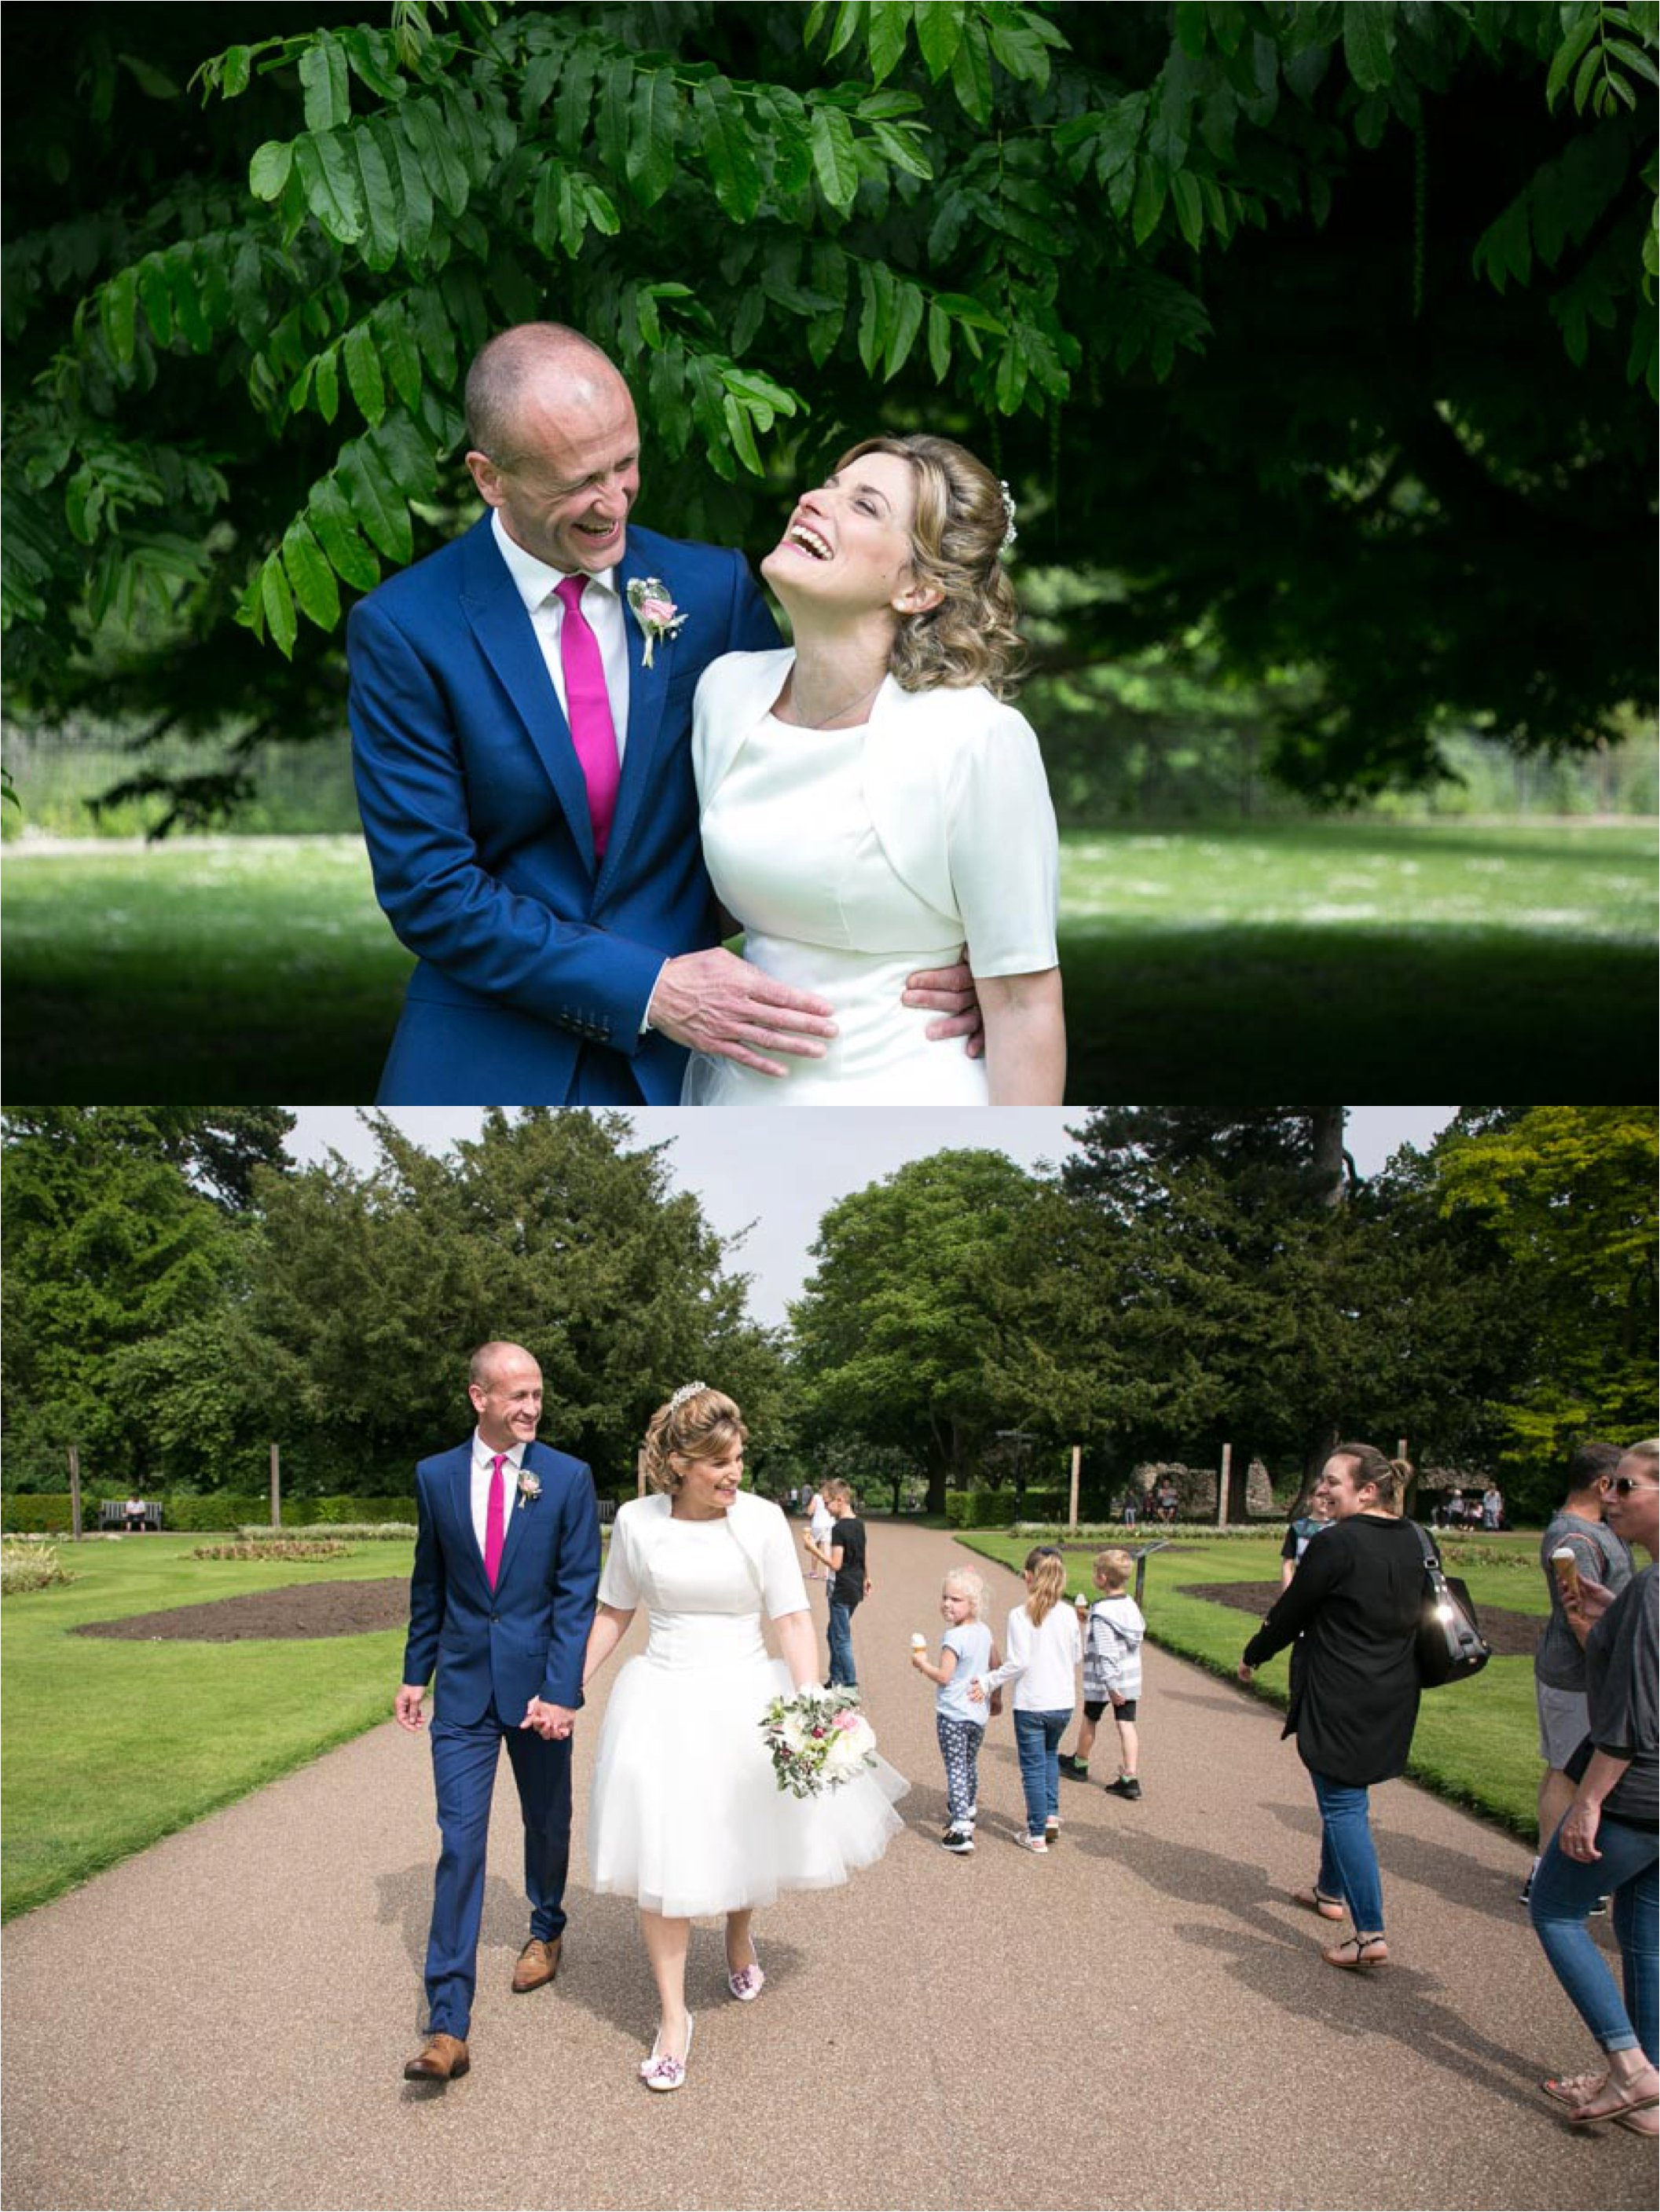 Laughing joyful wedding photography in Abbey Gardens Bury St Edmunds